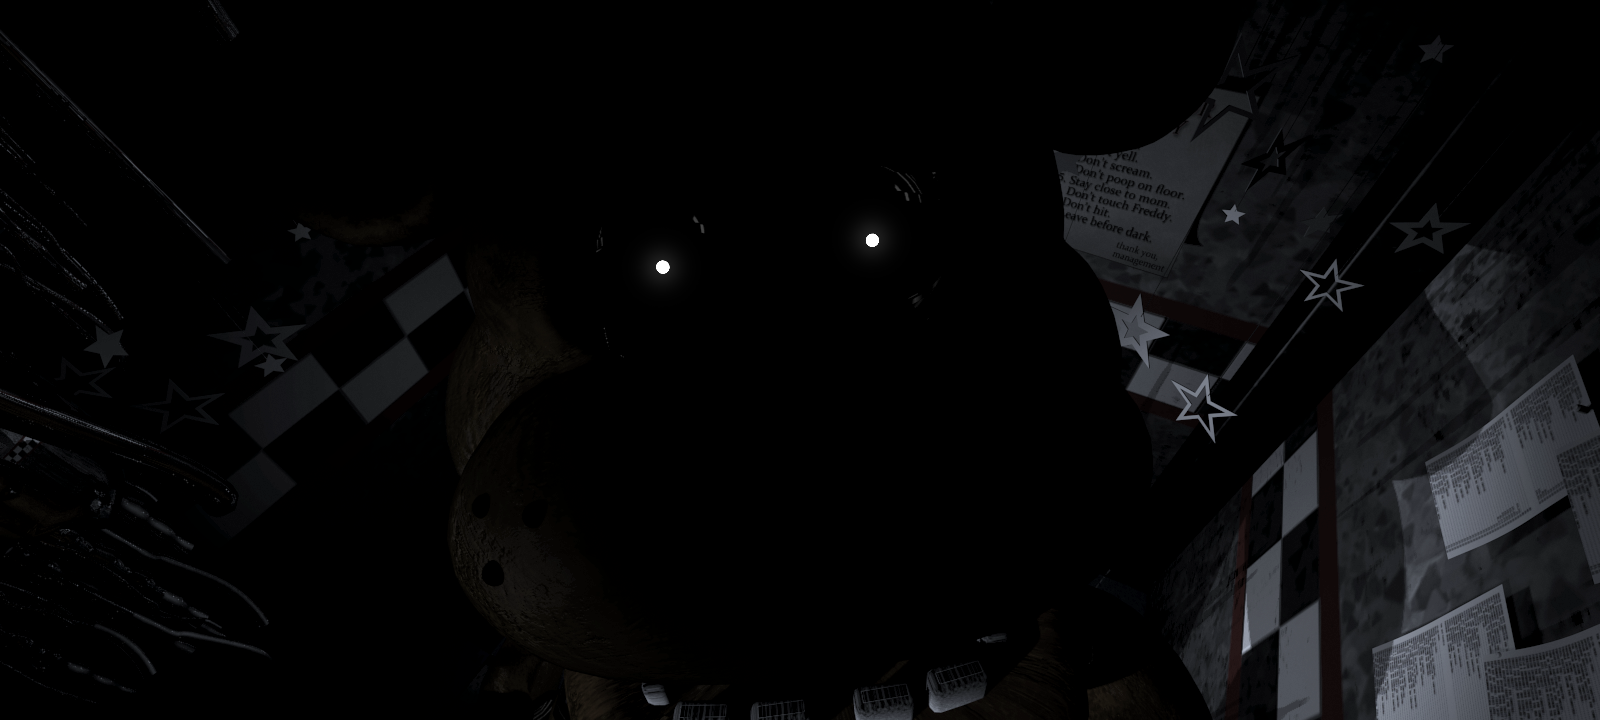 Another vital part to knowing how close freddy is to you is